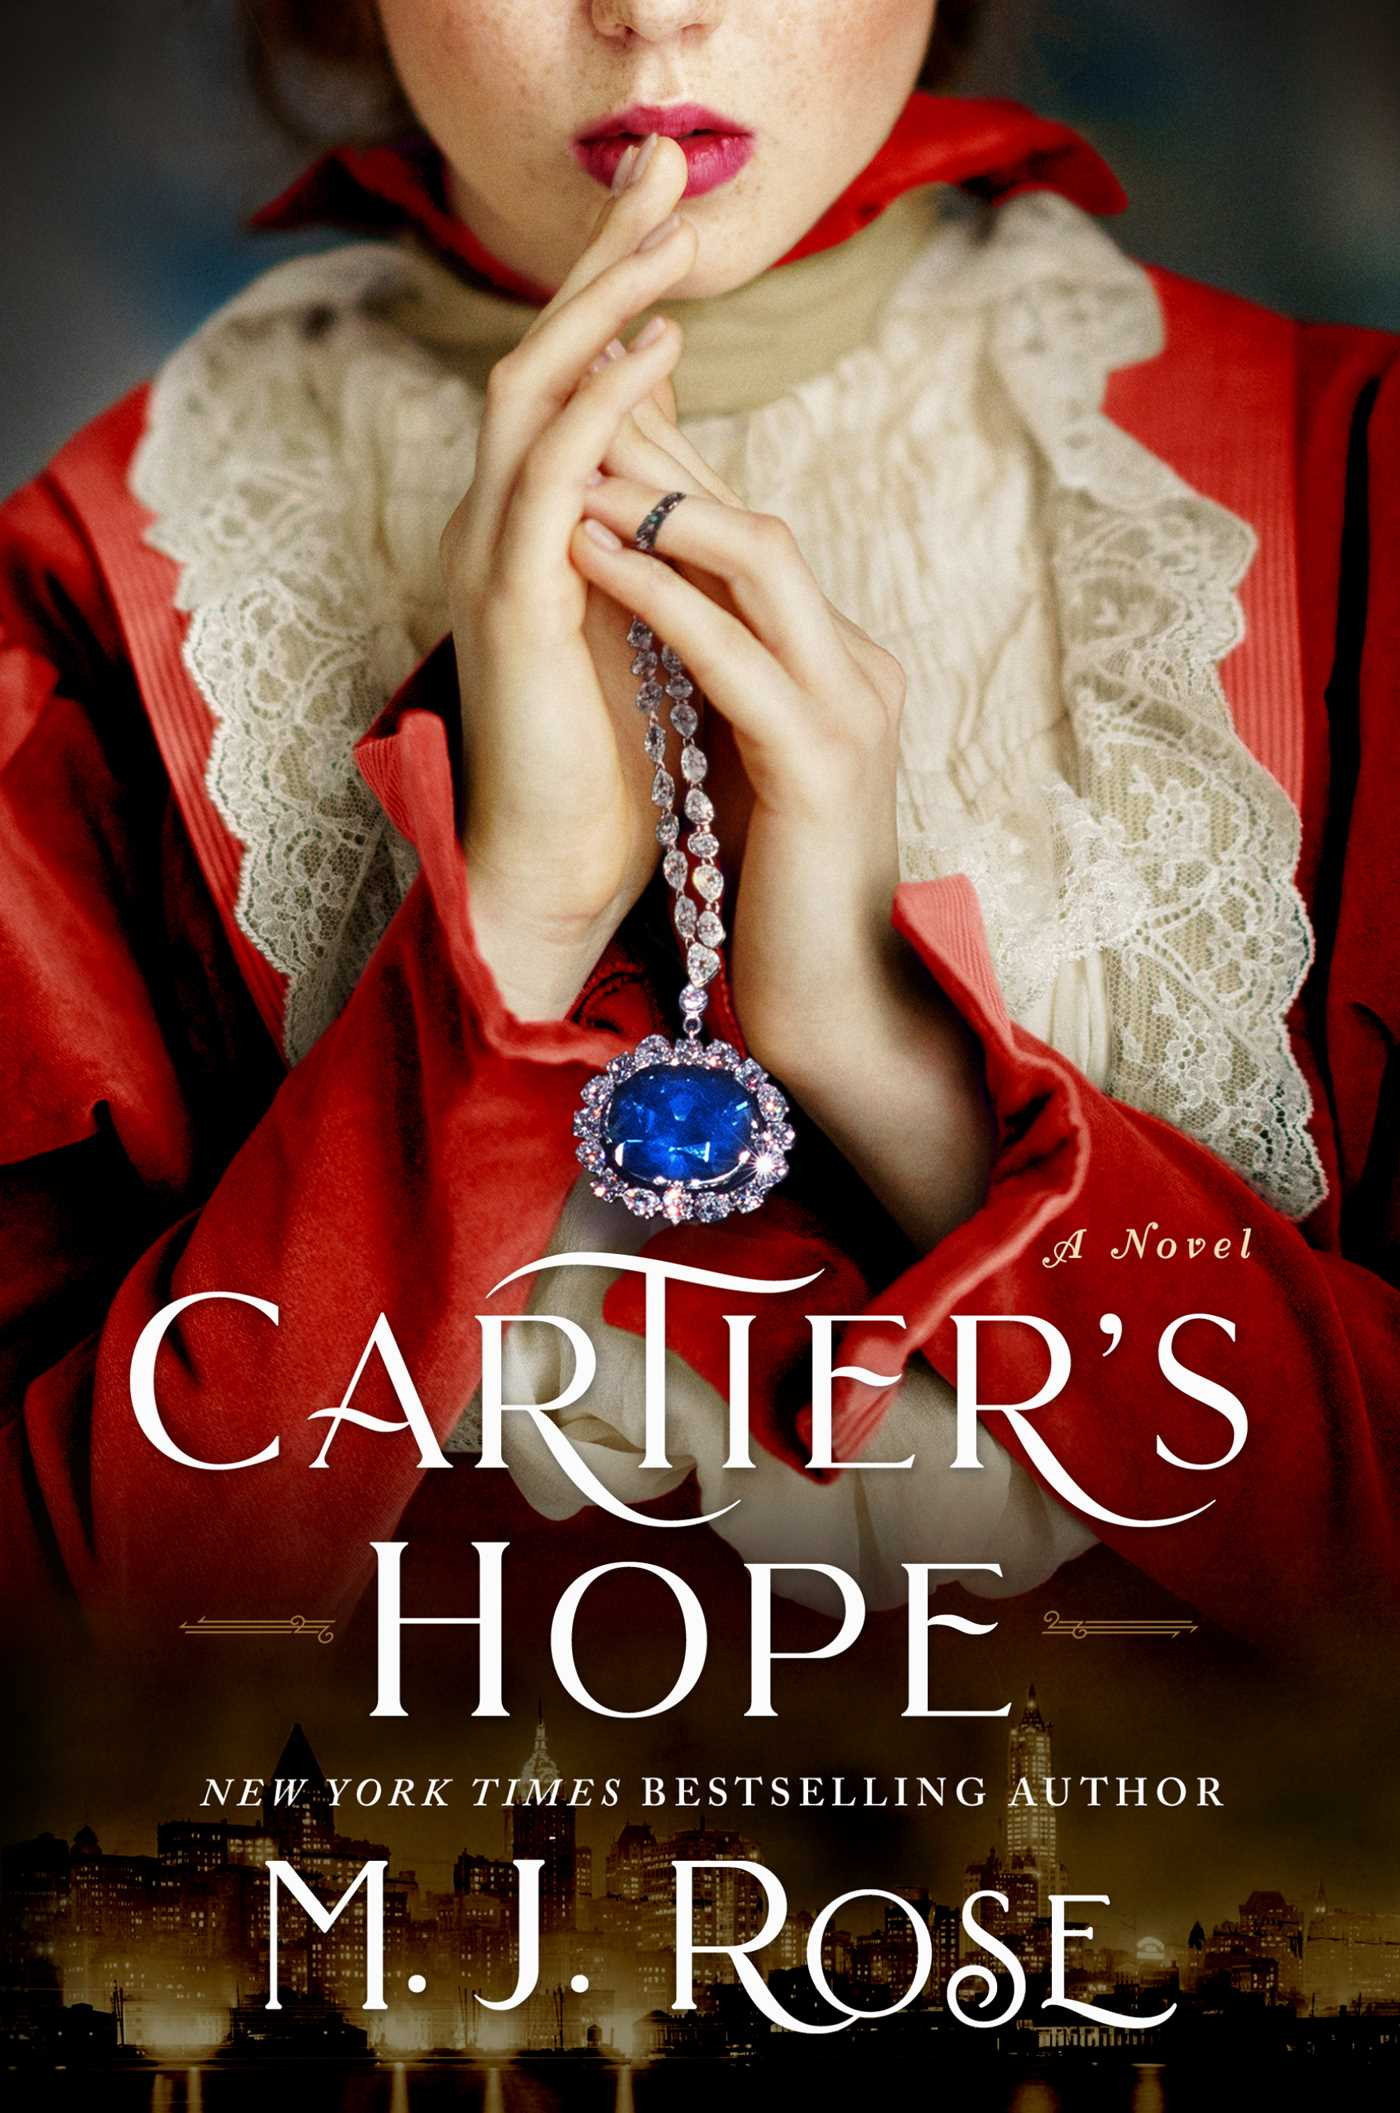 Book cover for Cartier's Hope by M.J. Rose